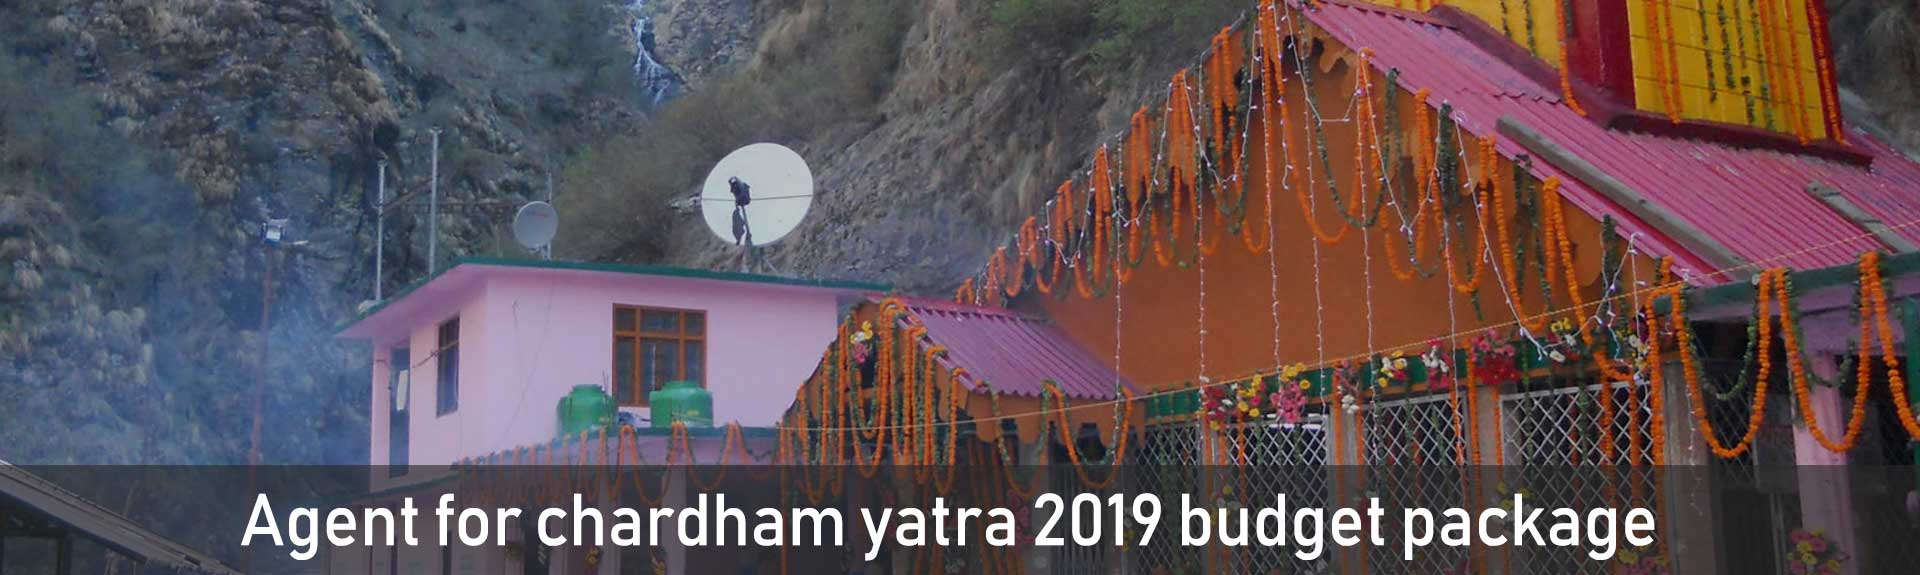 Agent for chardham yatra 2019 budget package